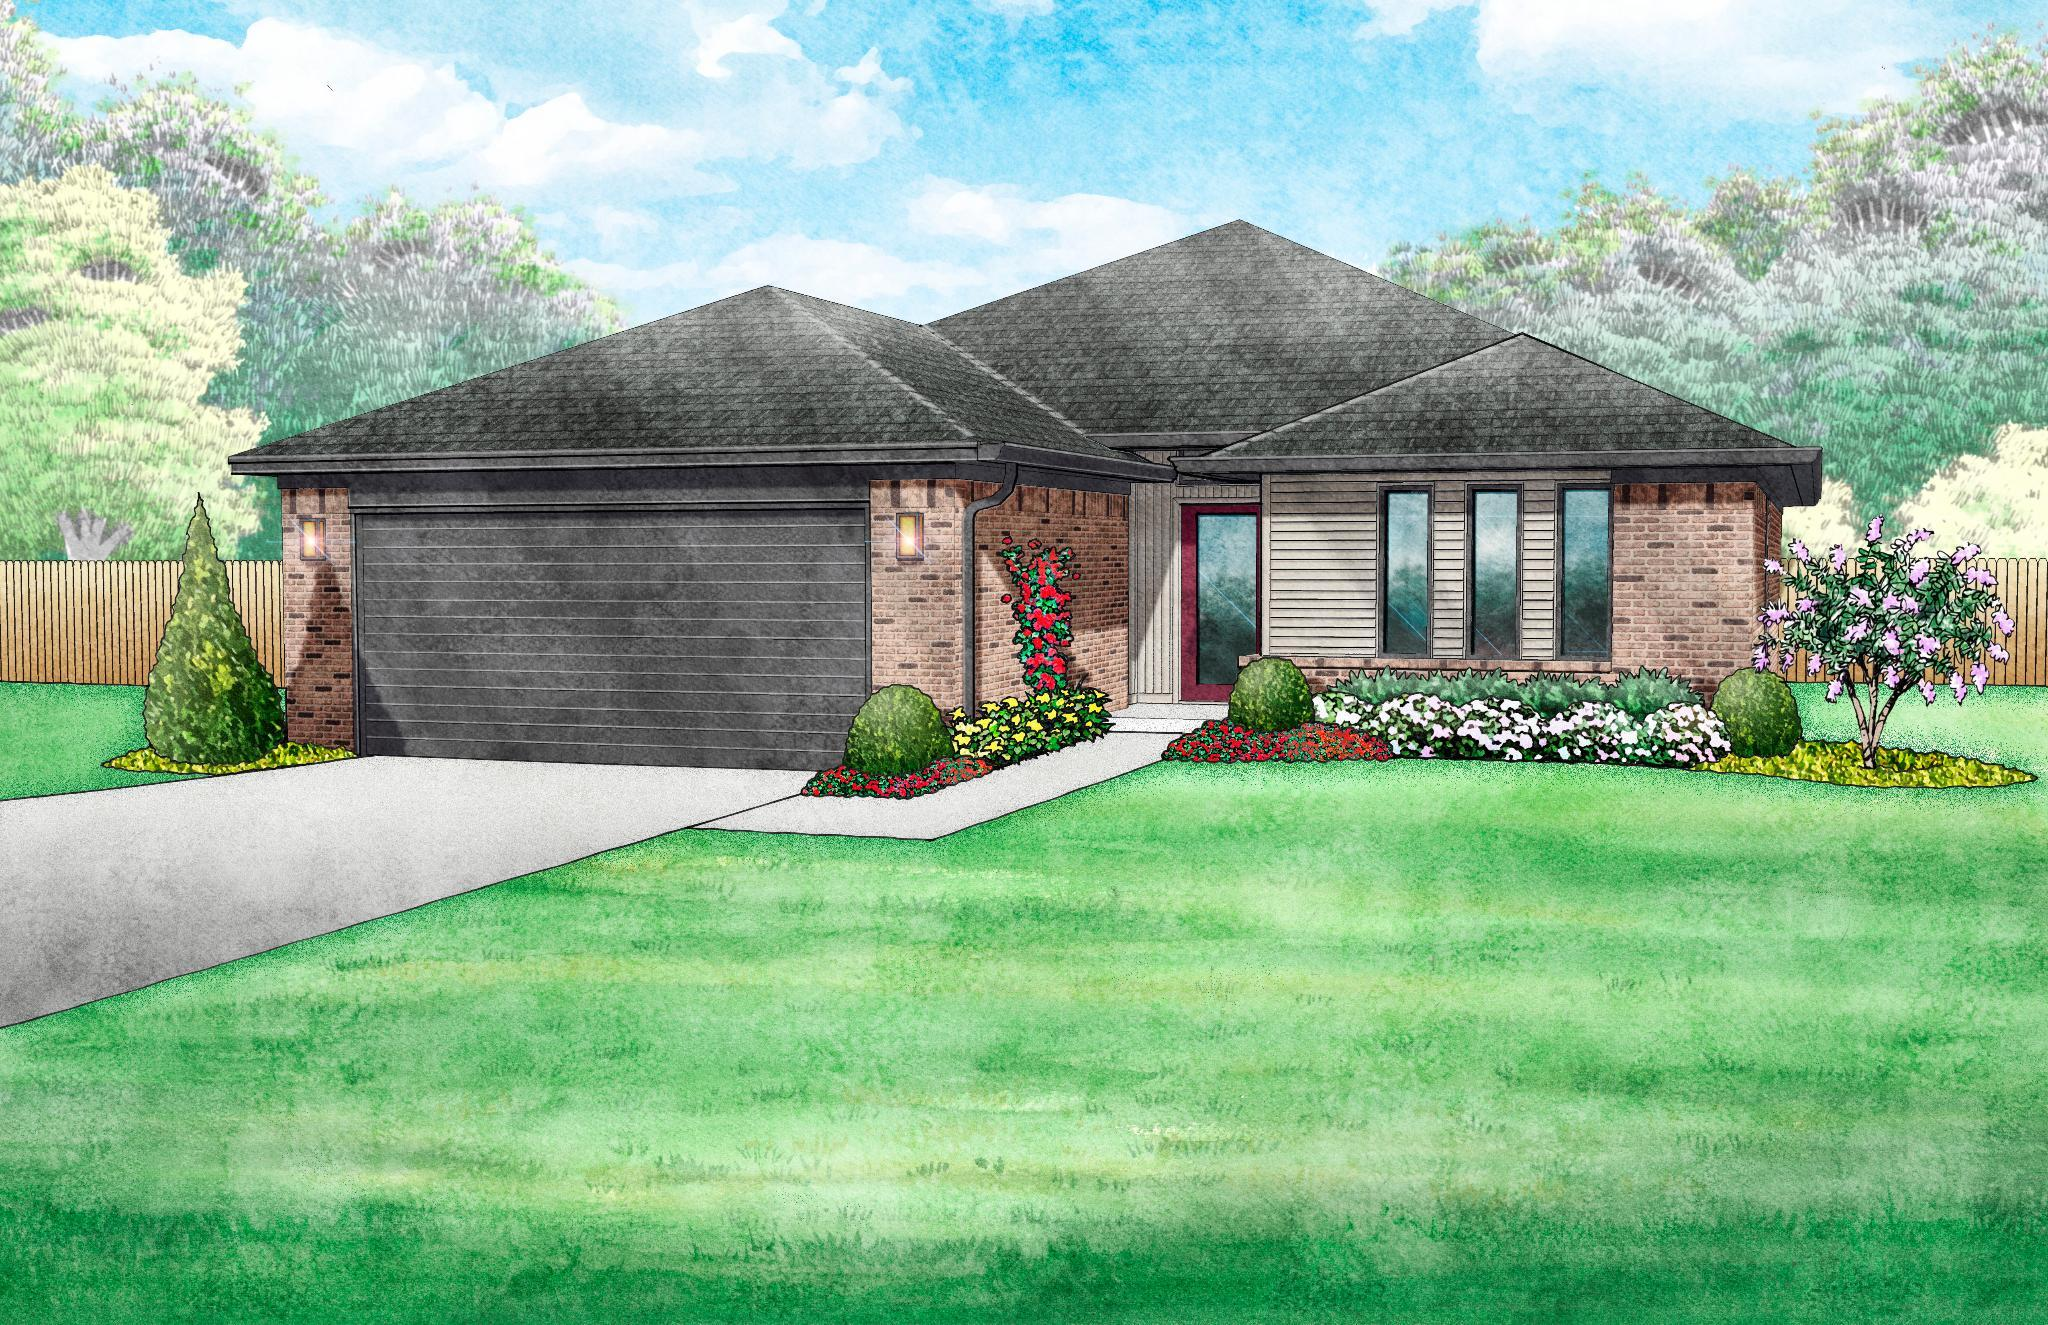 New Construction Homes U0026 Plans In Edmond, OK | 1,131 Homes | NewHomeSource